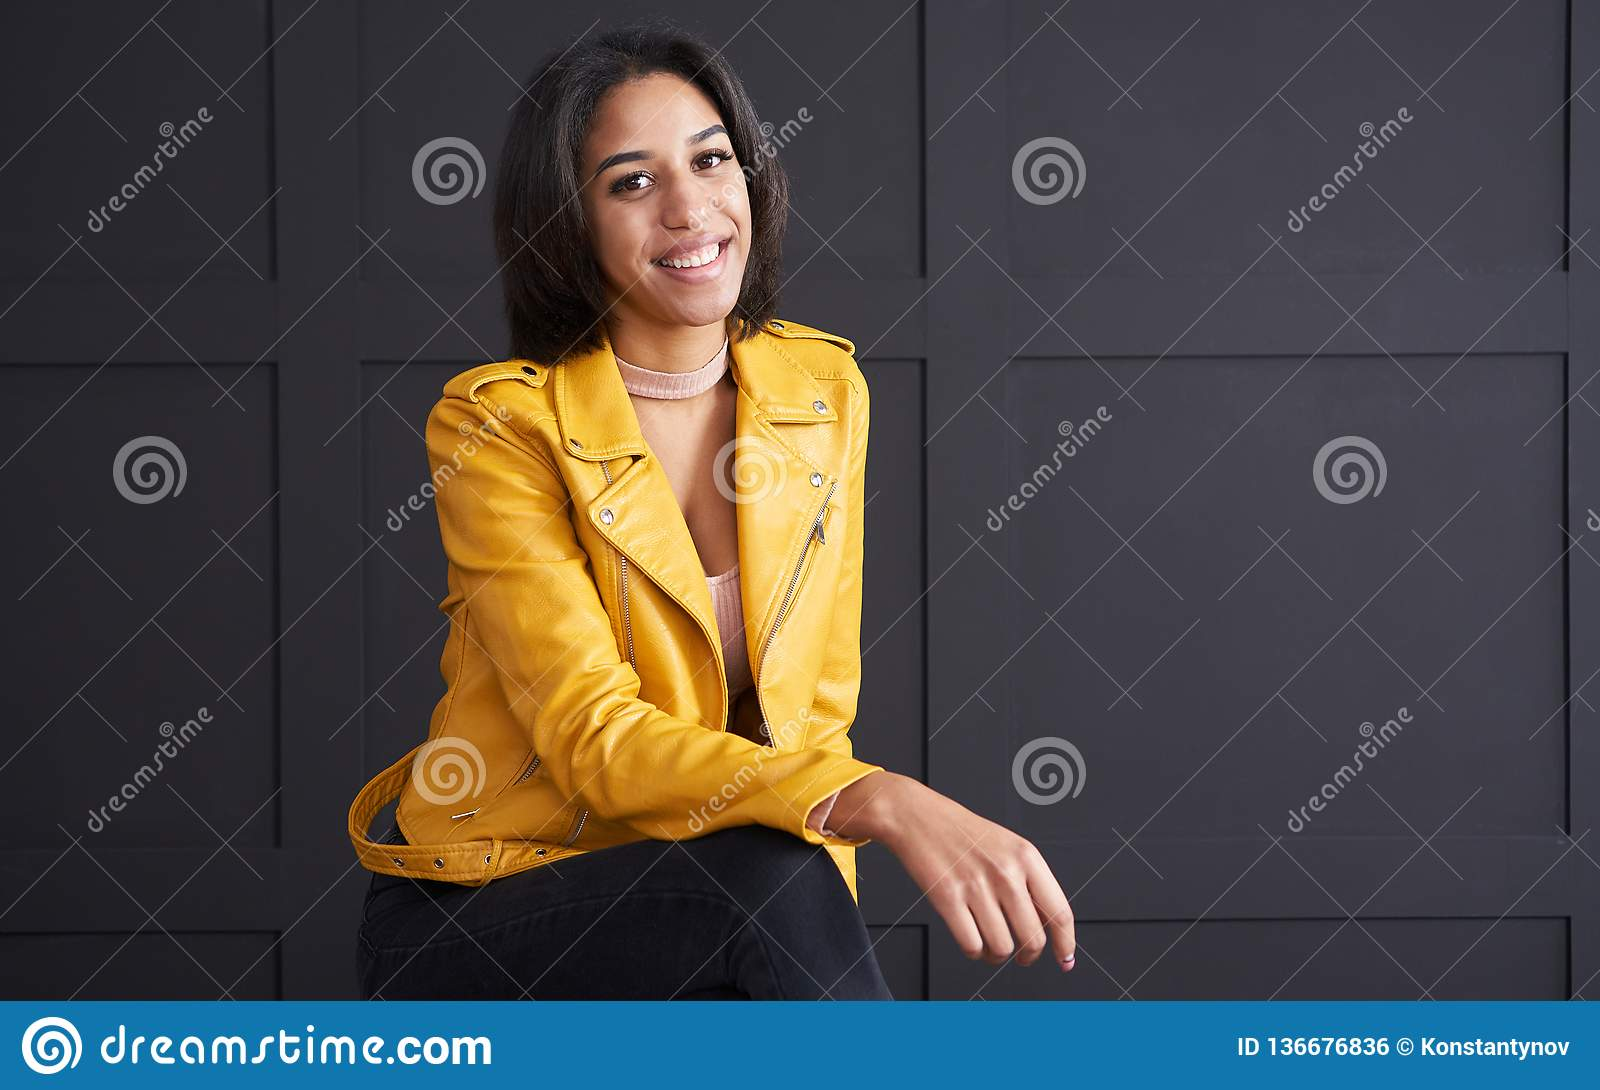 Teenage girl smiling in yellow leather jacket